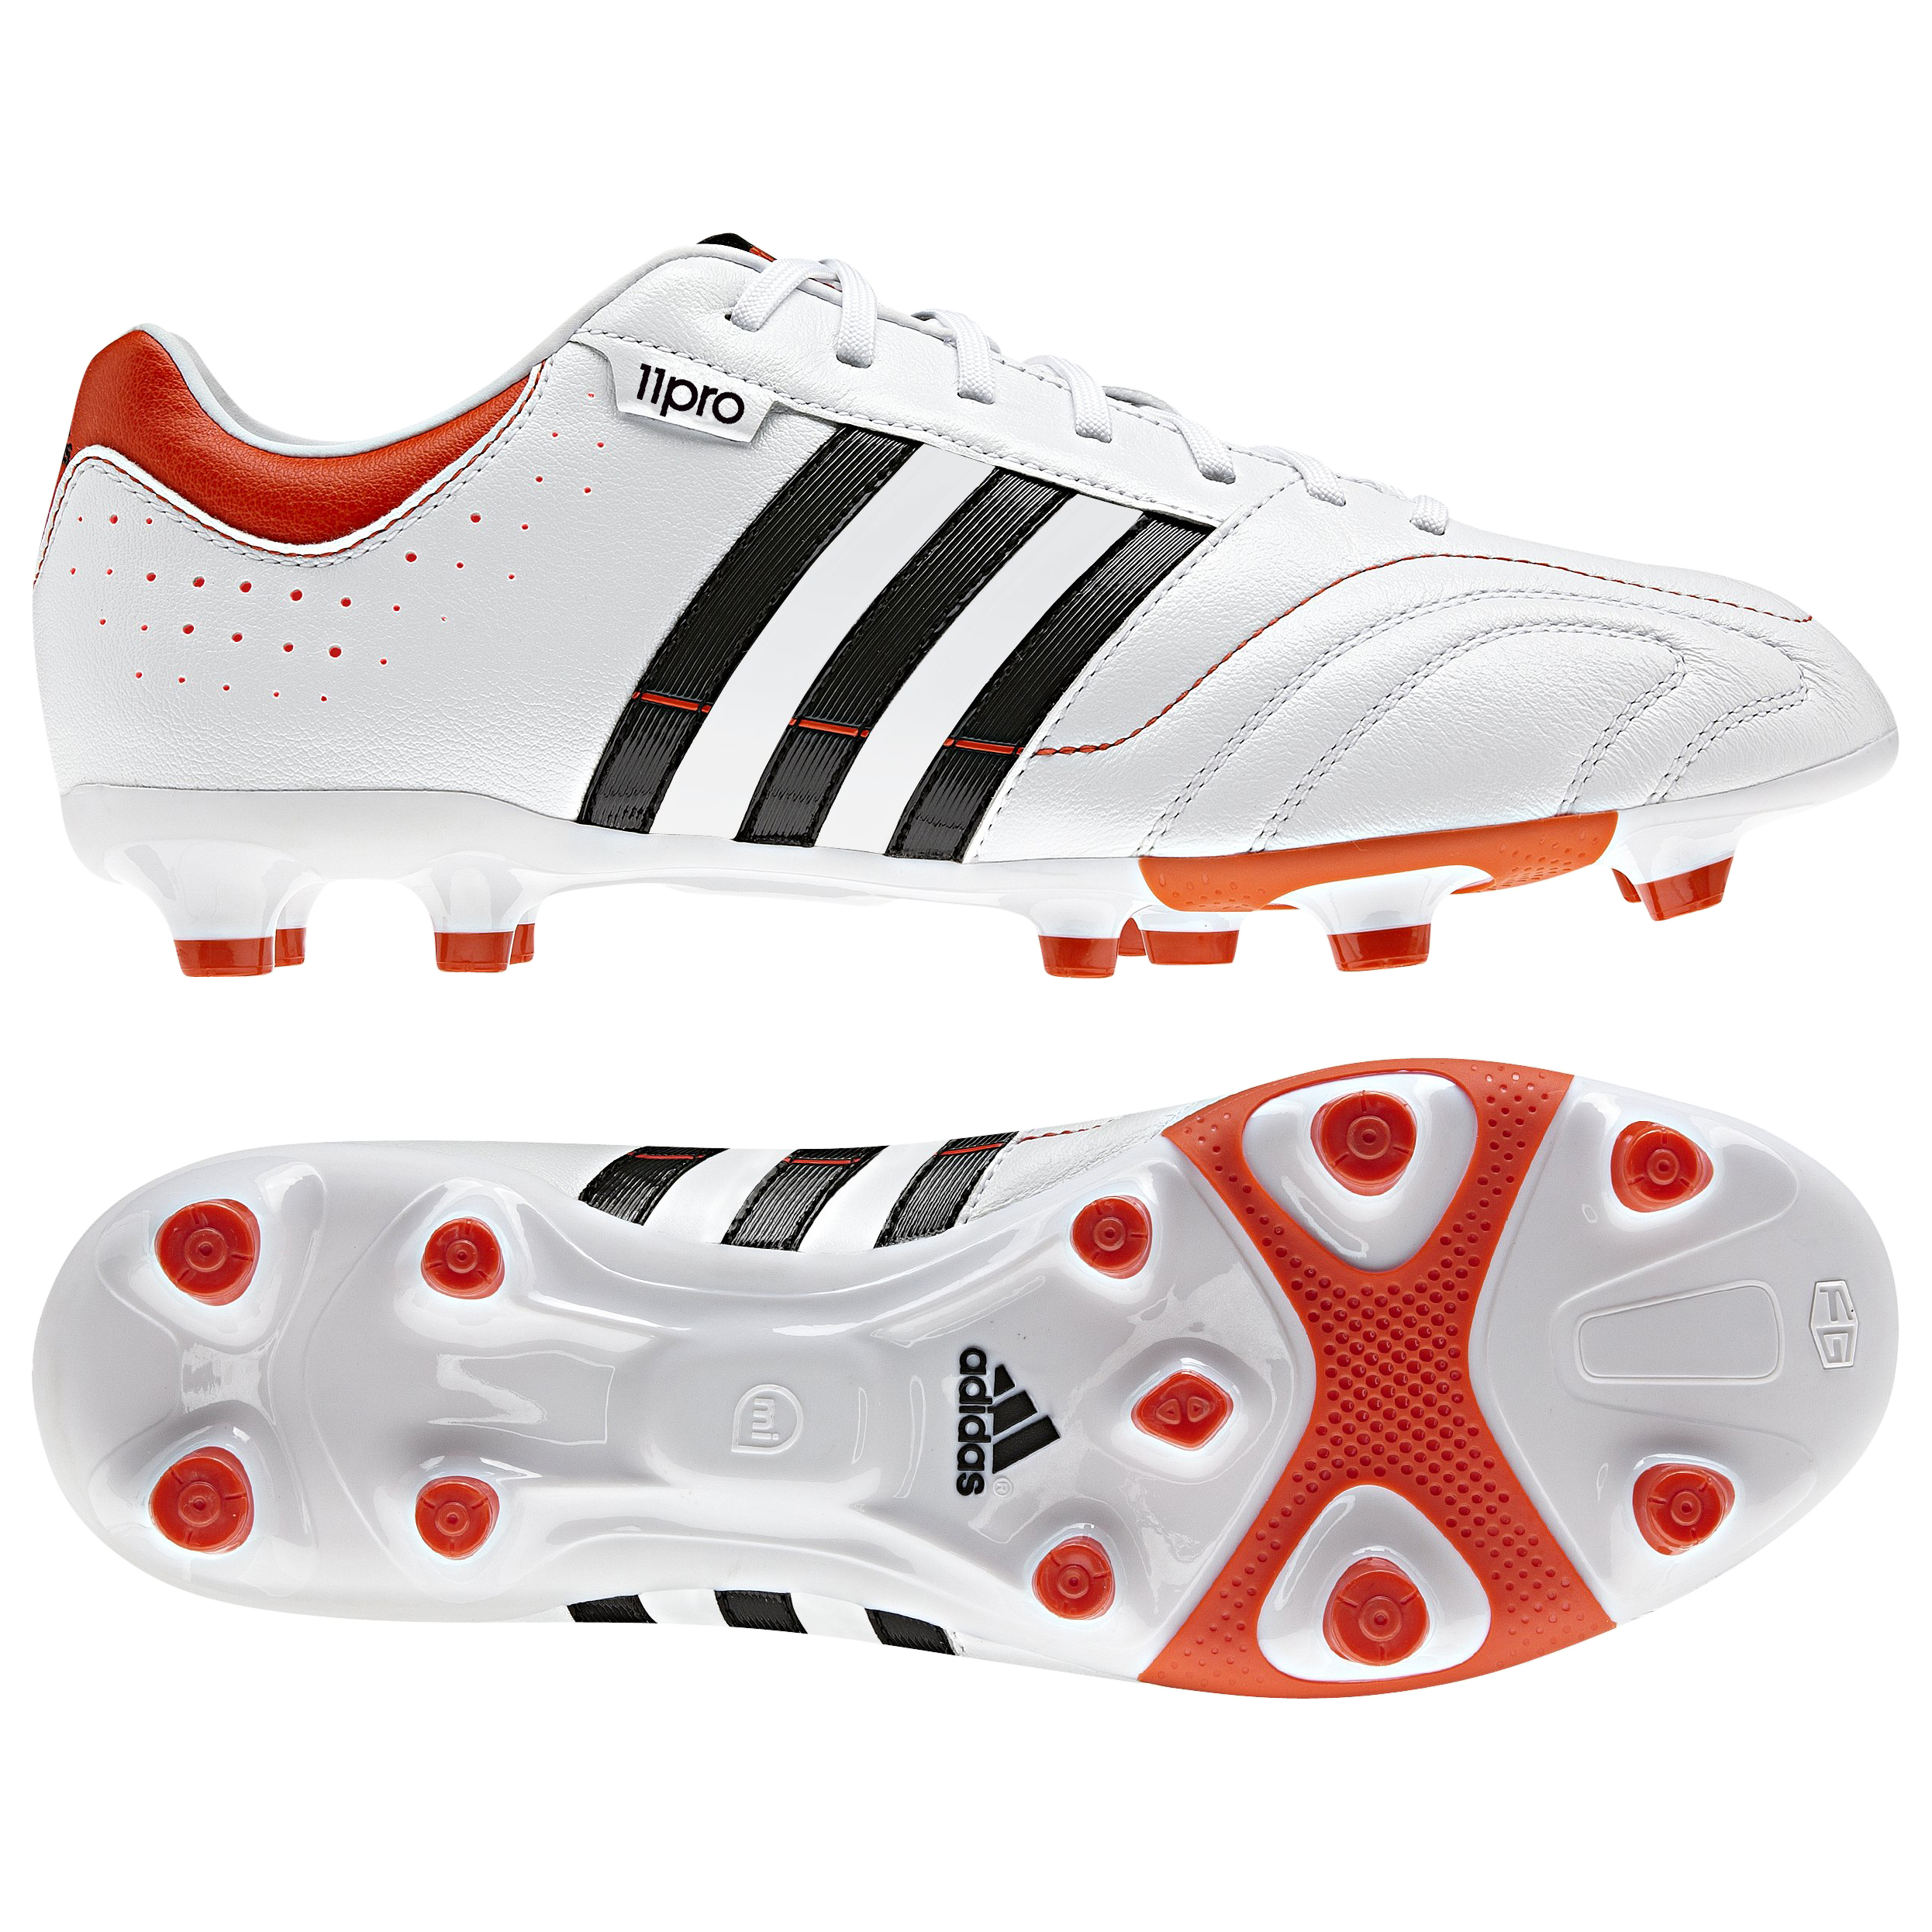 adidas 11Nova TRX Firm Ground Football Boots - Running White/Black 1/High Energy S12